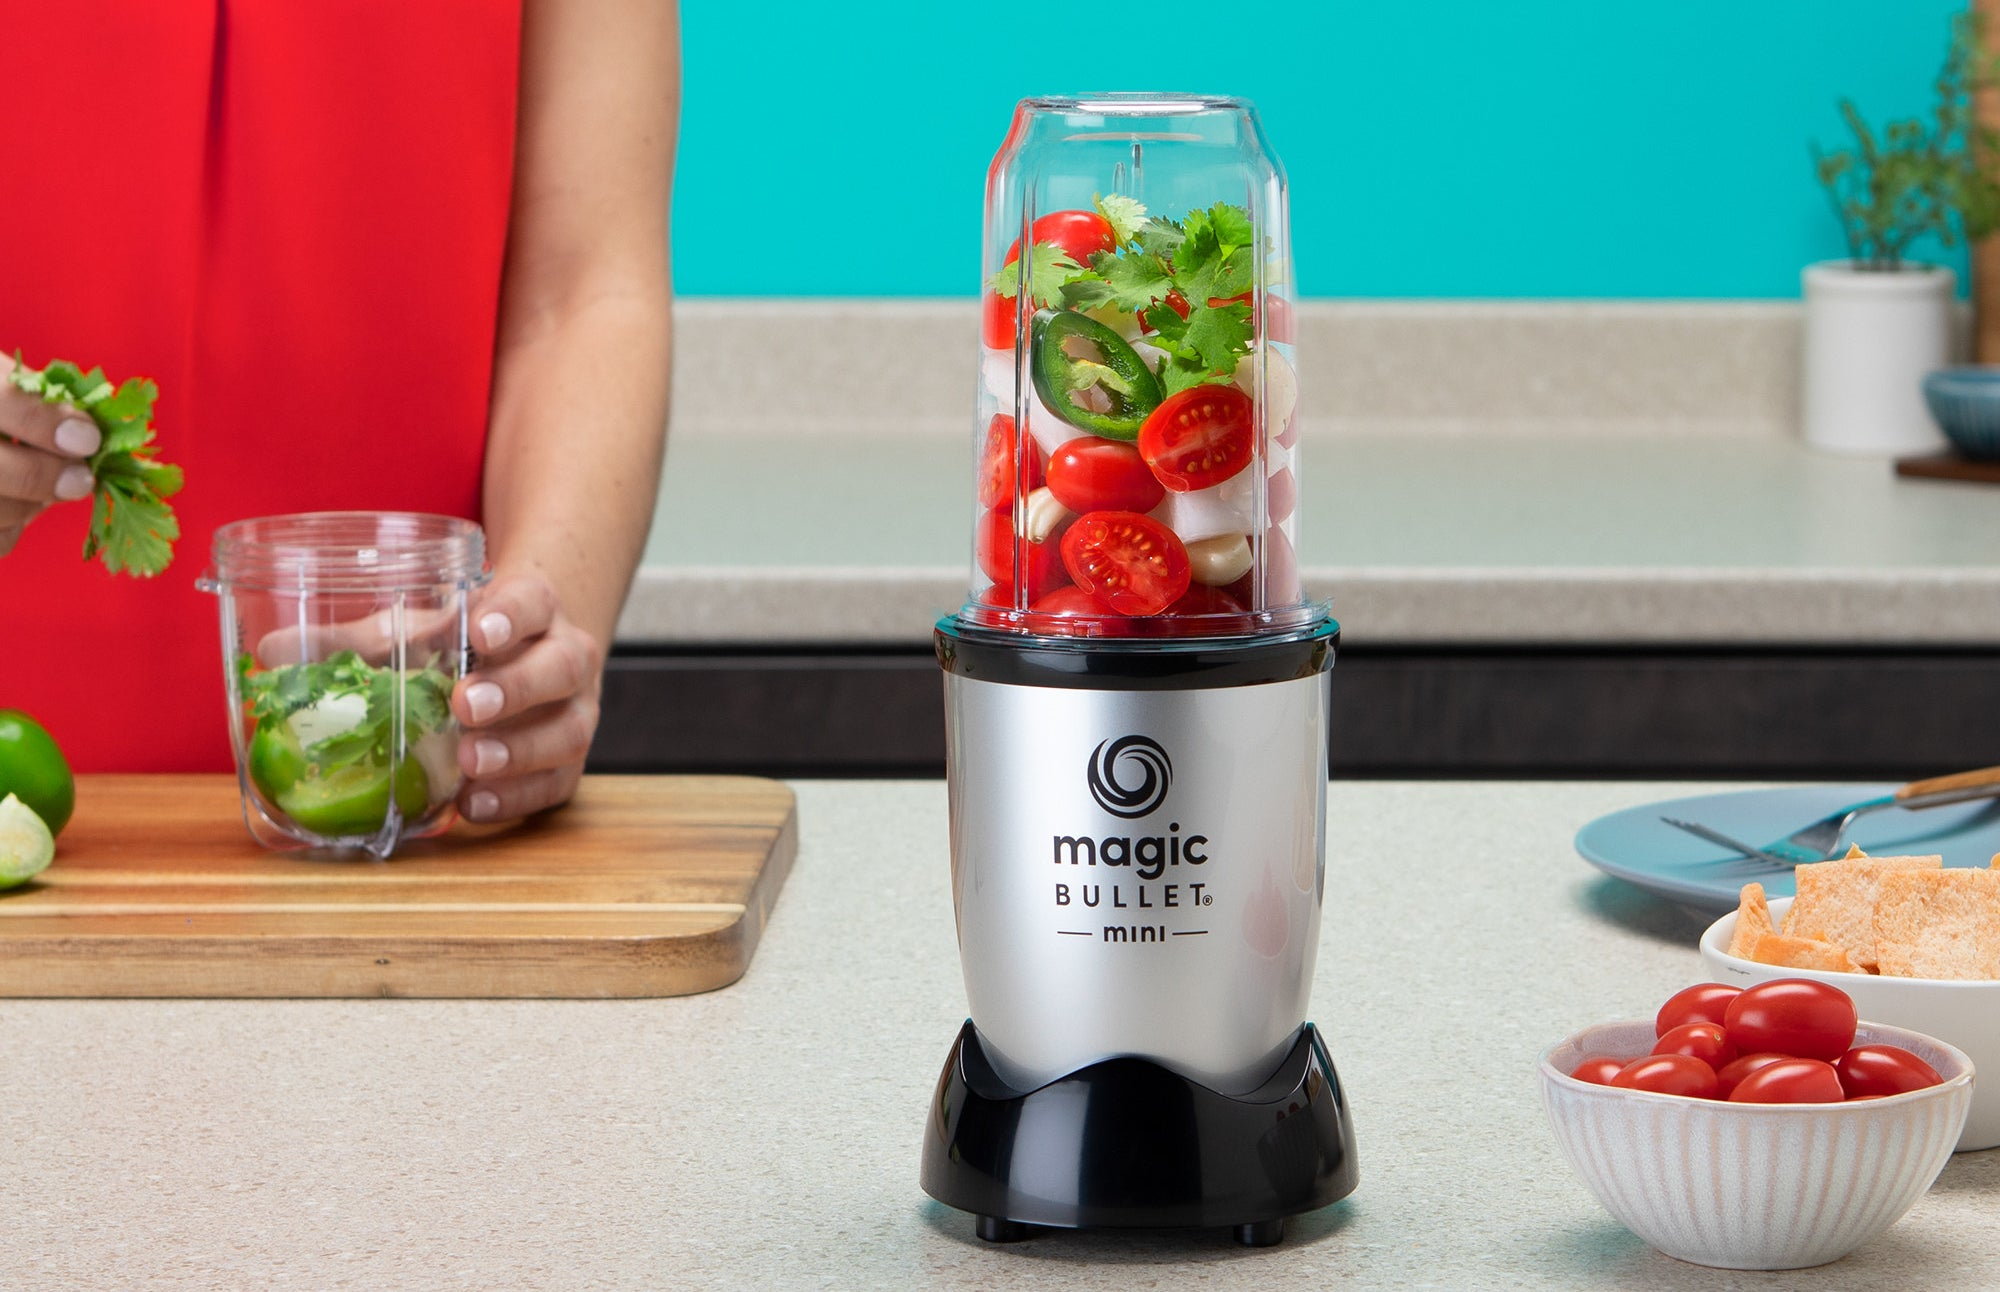 a silver and black magic bullet blending machine